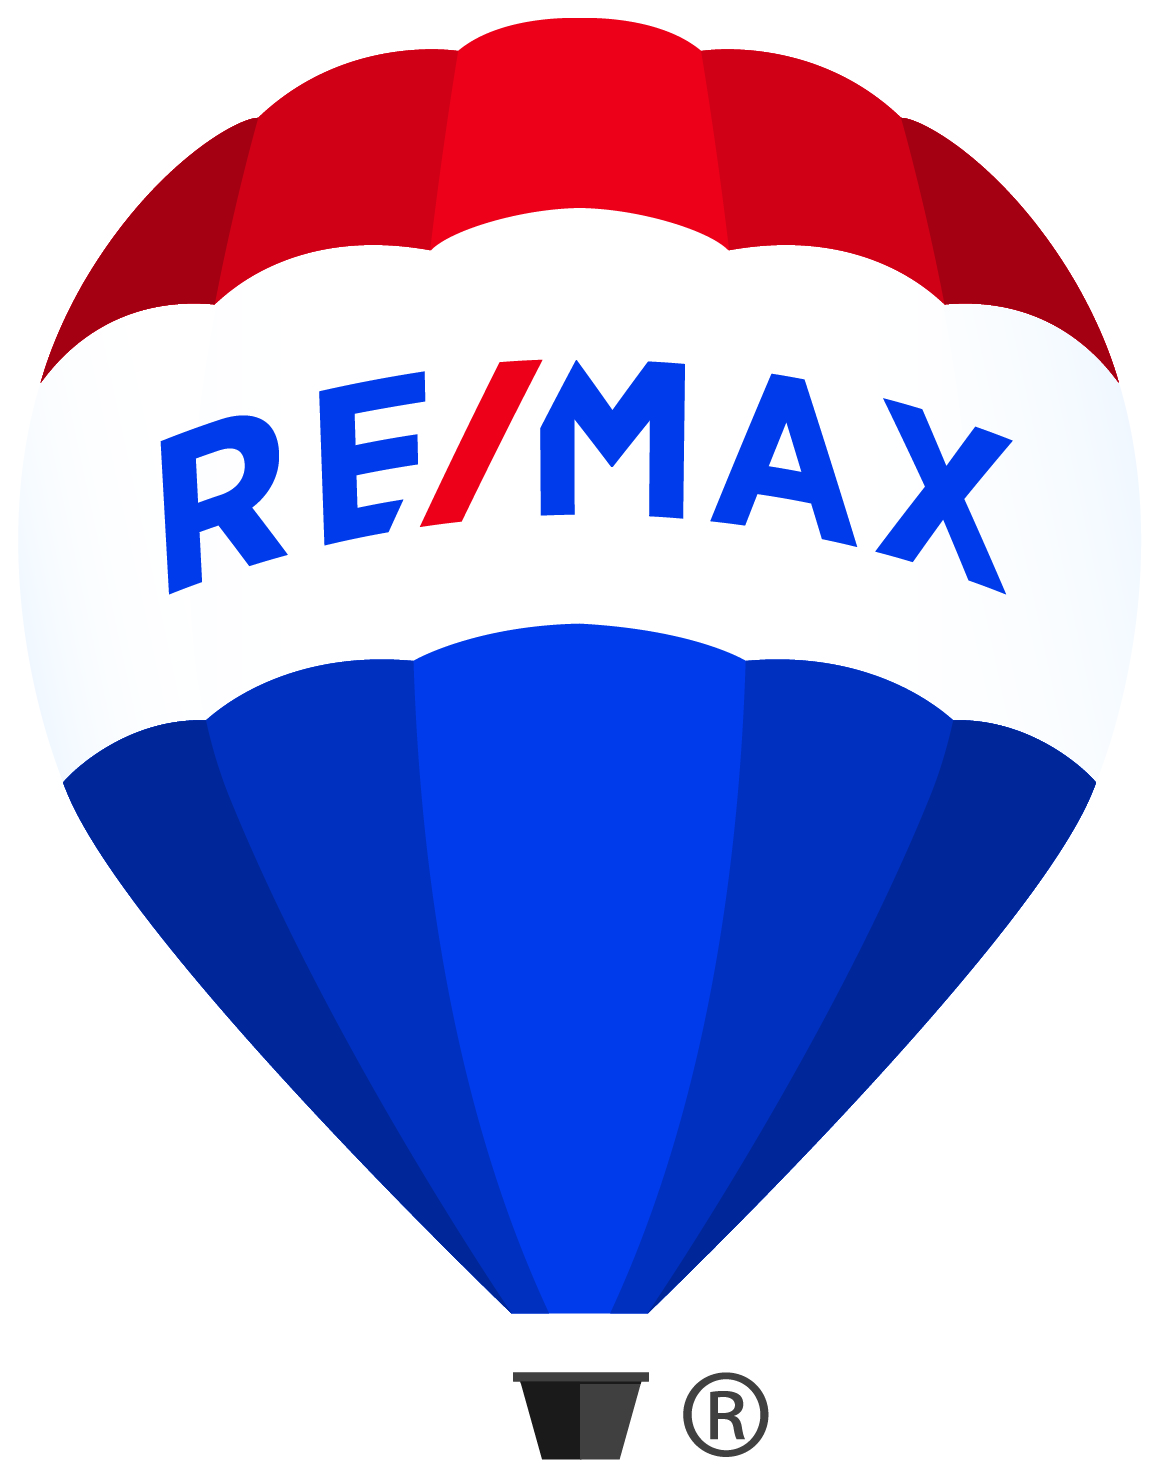 RE/MAX DAWSON CREEK REALTY